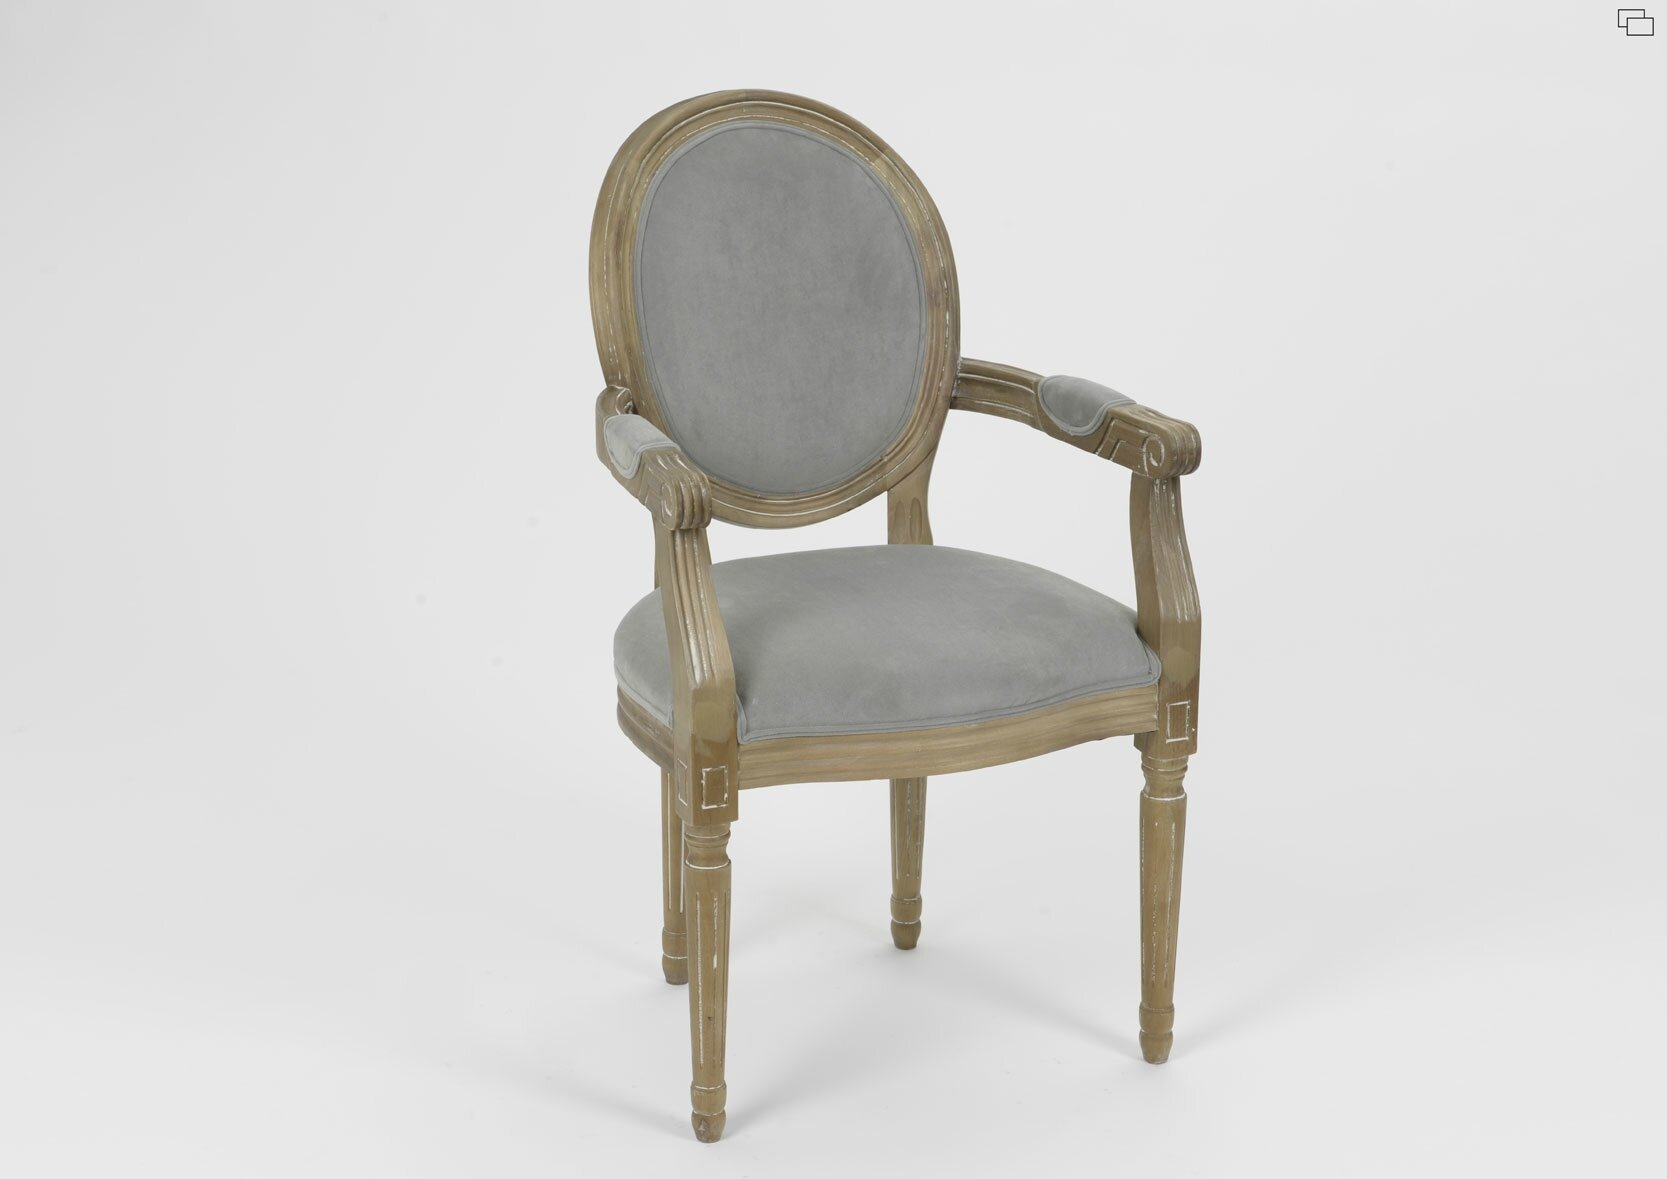 Chaise louis xvi pas cher for Chaise medaillon pas cher